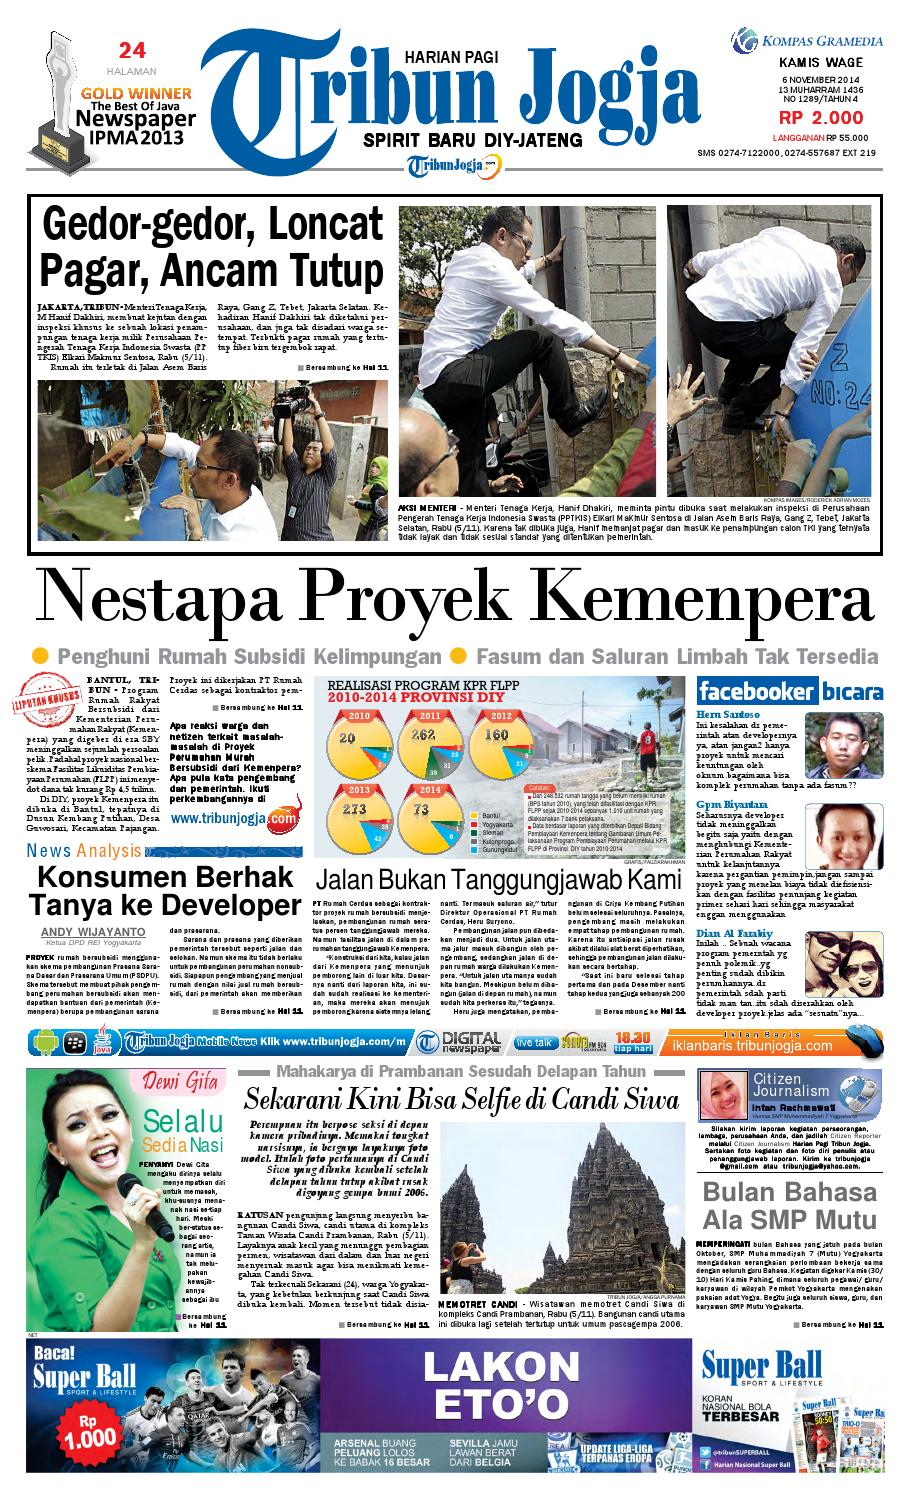 Tribunjogja 06 11 2014 By Tribun Jogja Issuu Produk Ukm Bumn Permen Tape Ladida